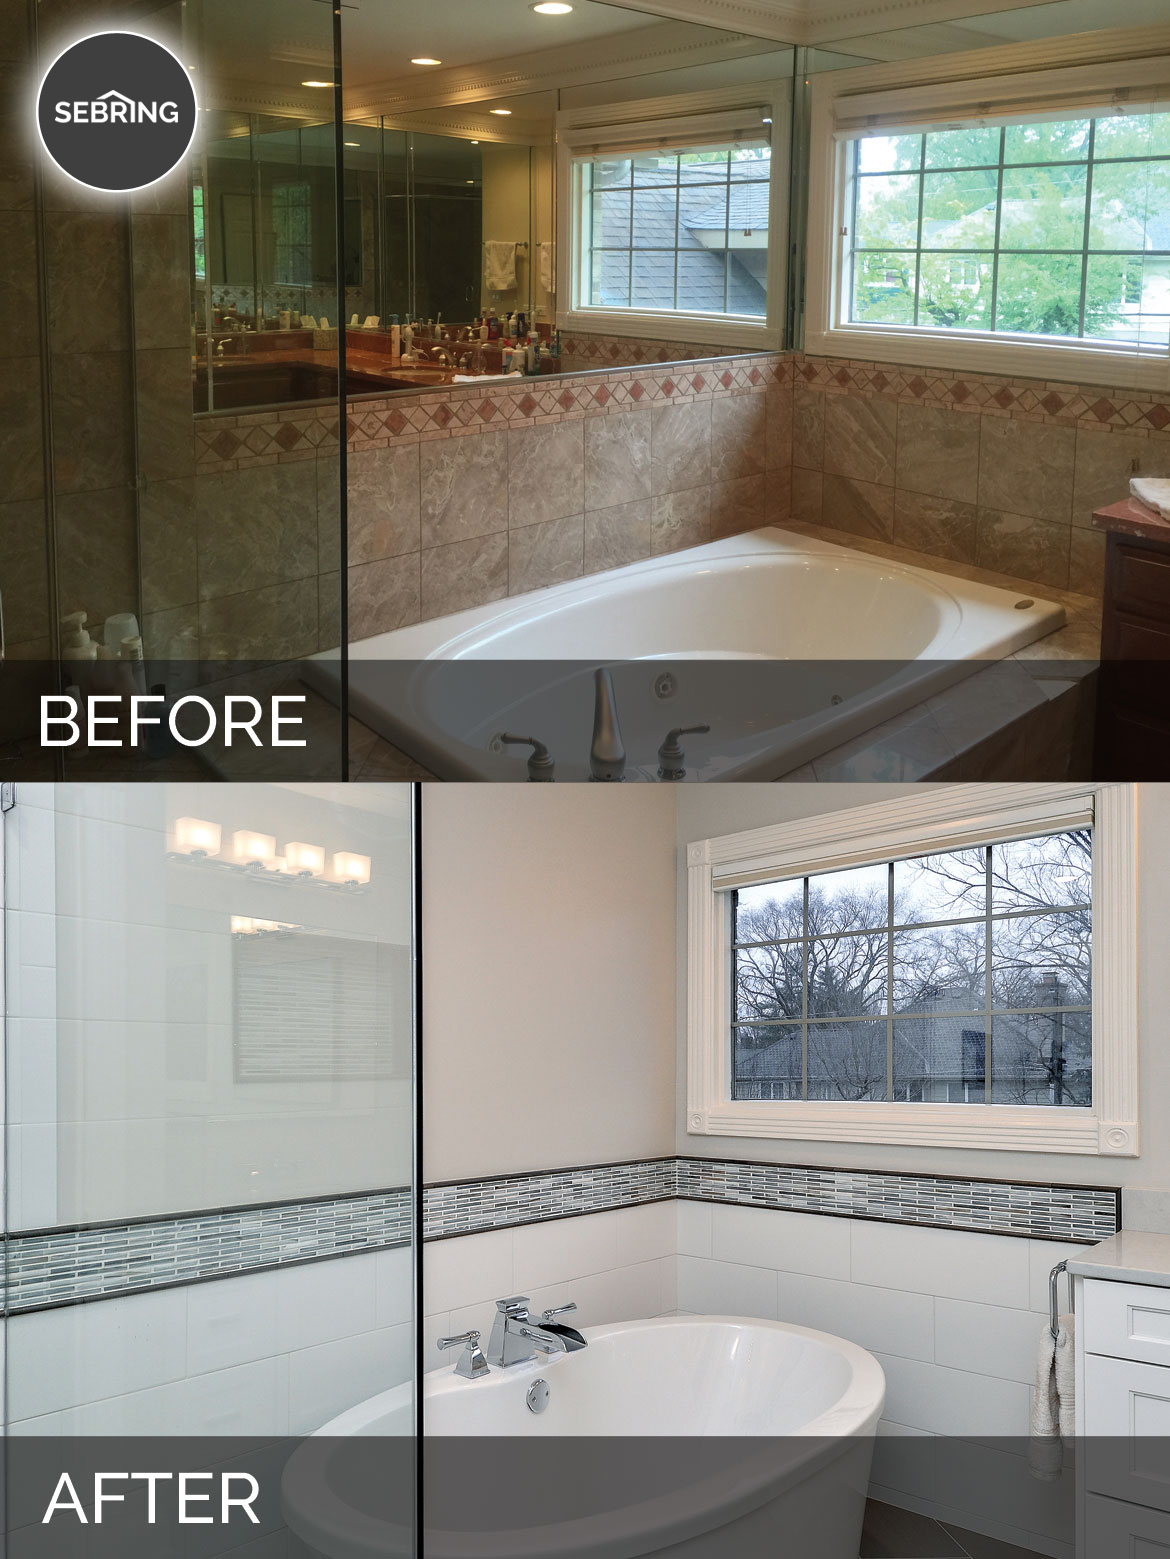 Greg Julie S Master Bathroom Remodel Before After Pictures